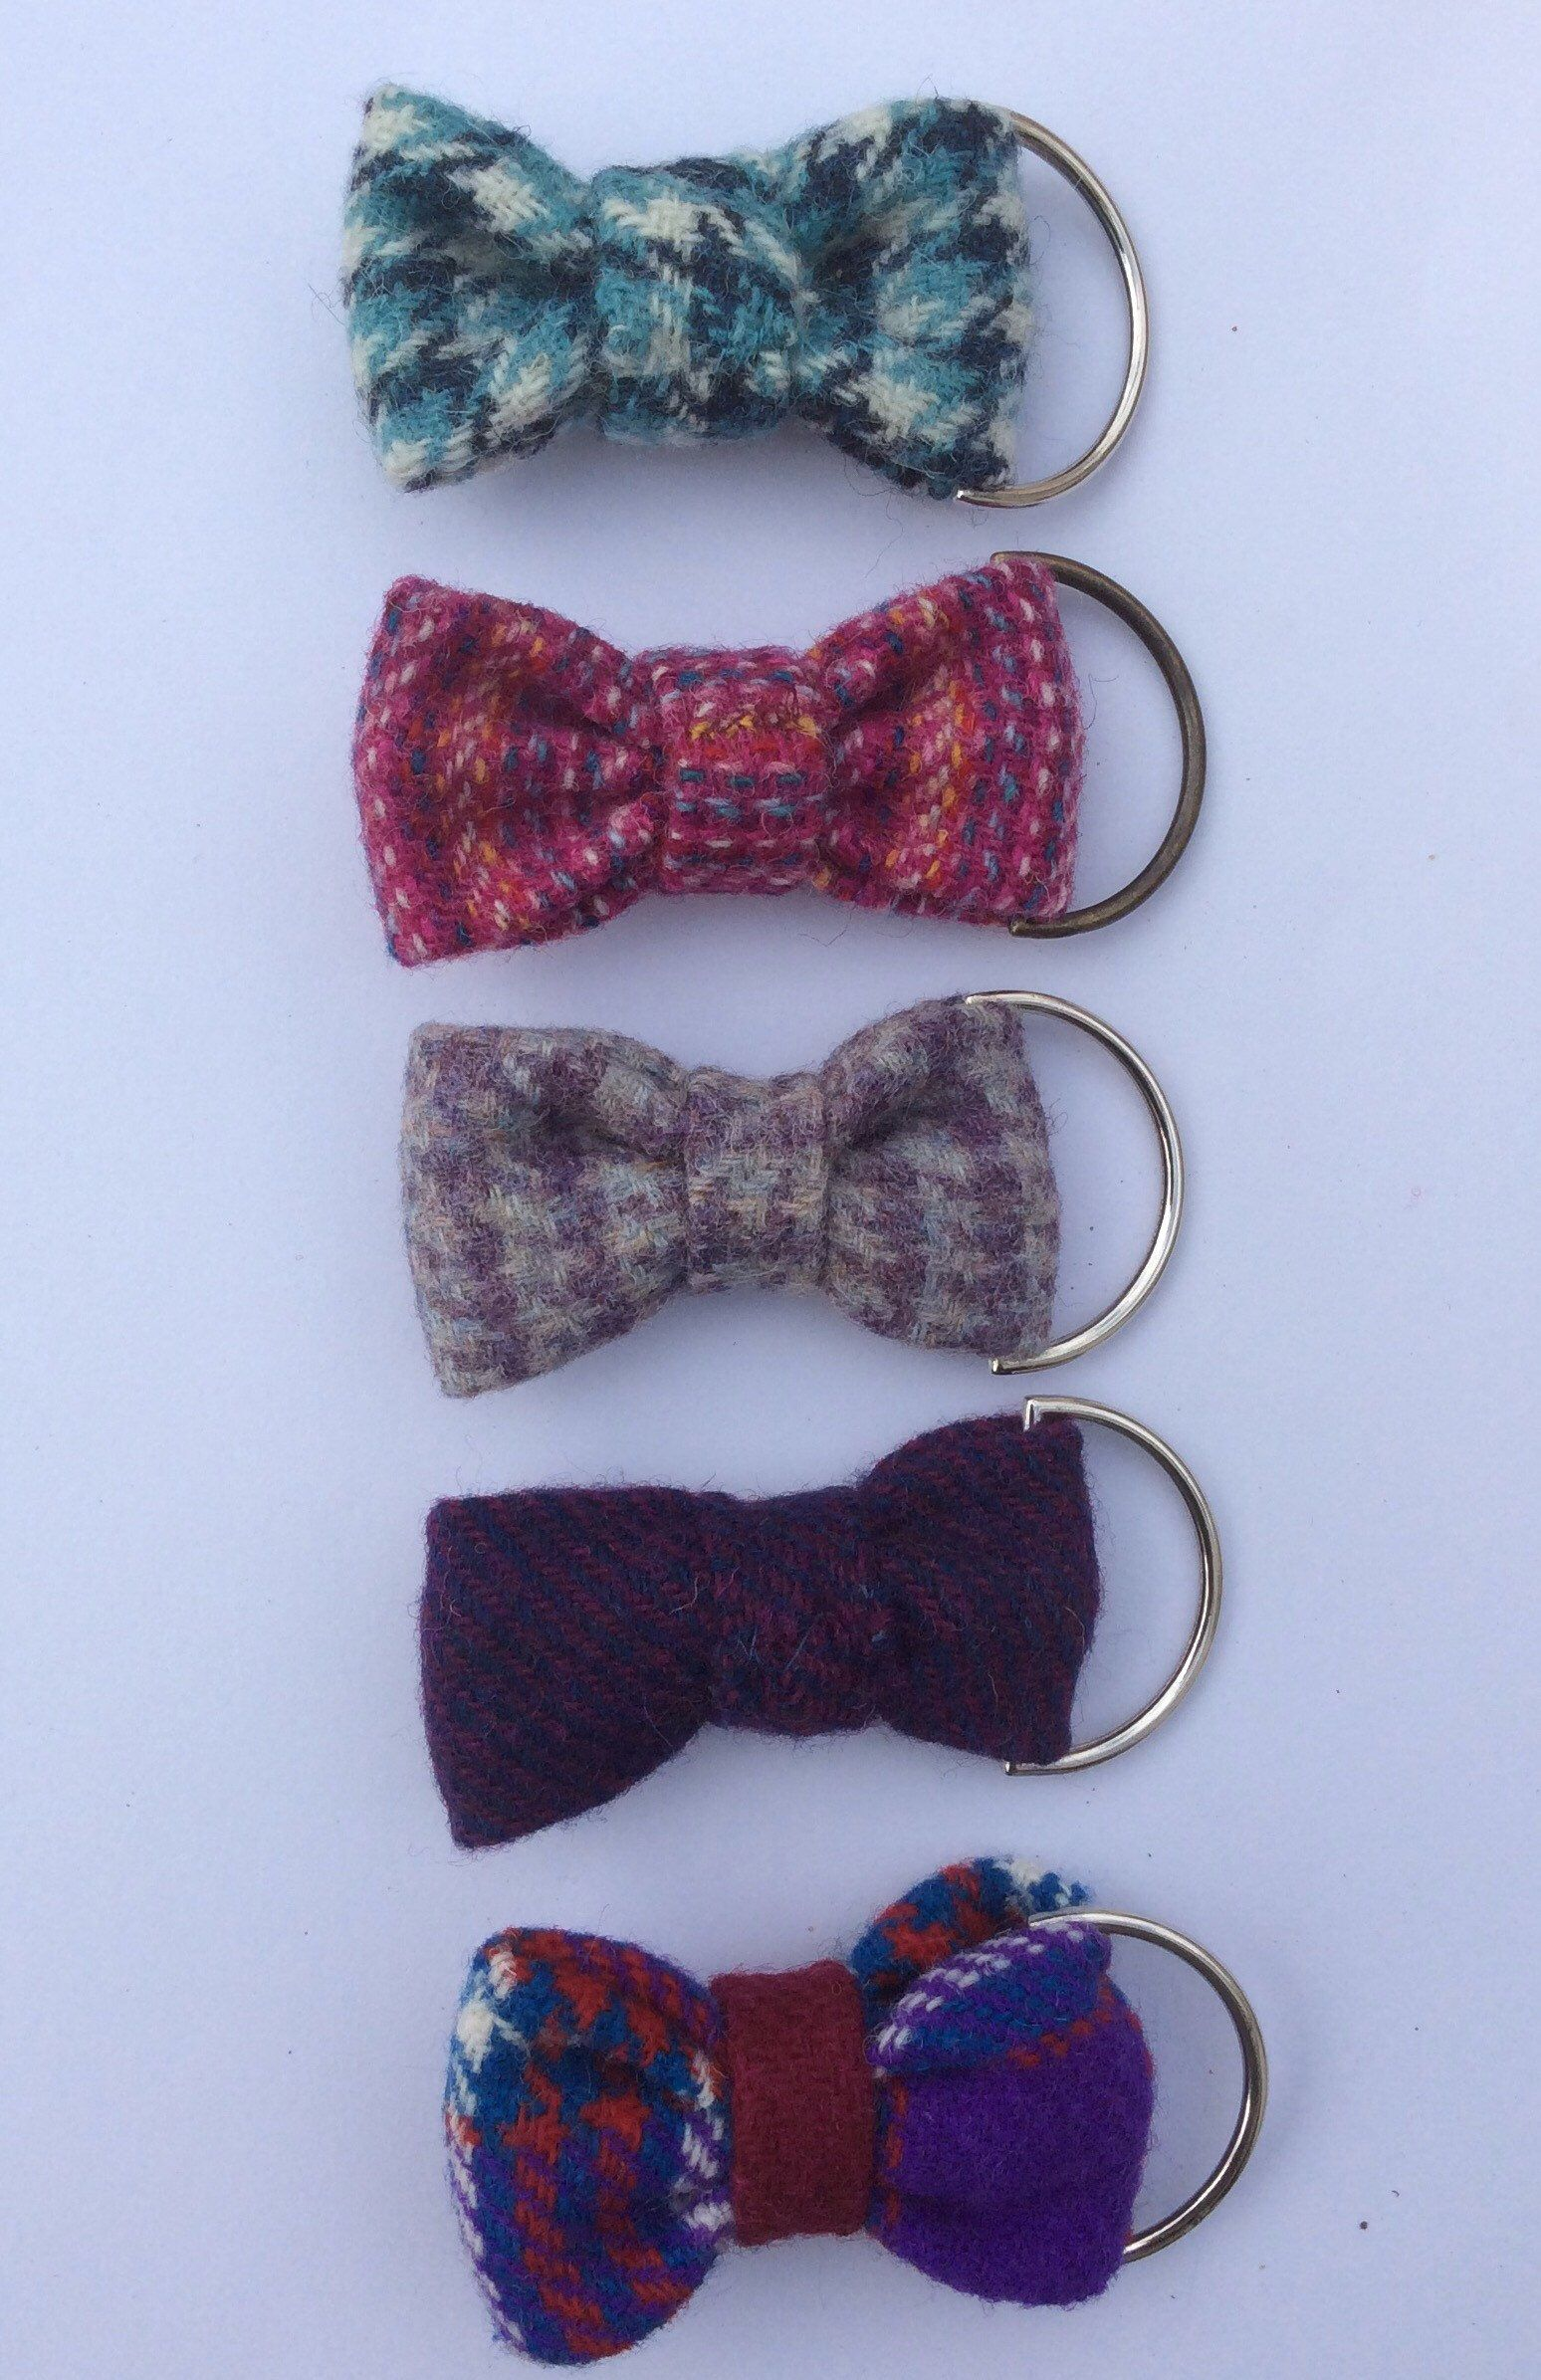 Handmade Harris Tweed Bow Keyrings Bag Charms Keyfobs Gift For Her Quirky